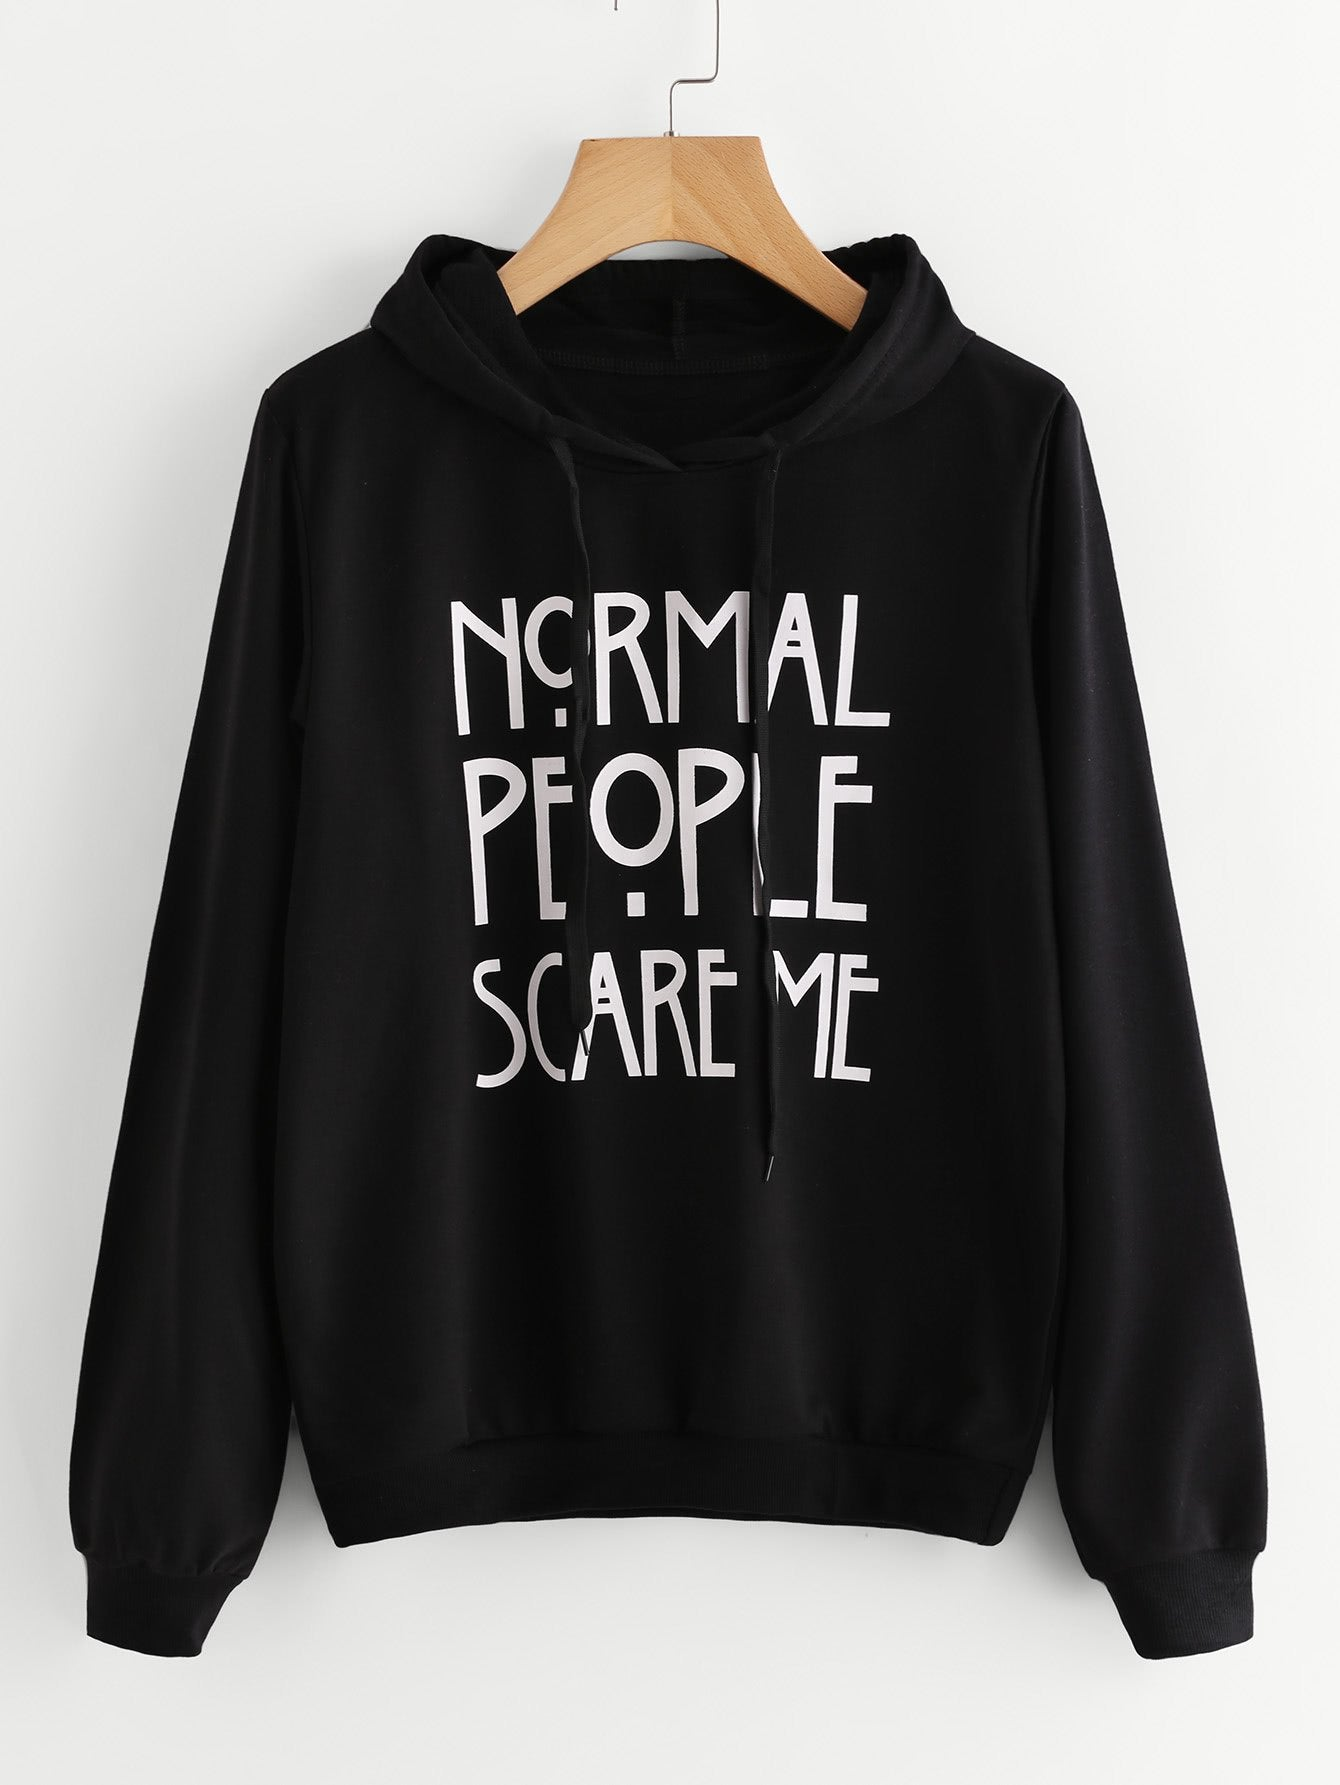 Normal people scare me pullover hoodie sweater (1462511271979)